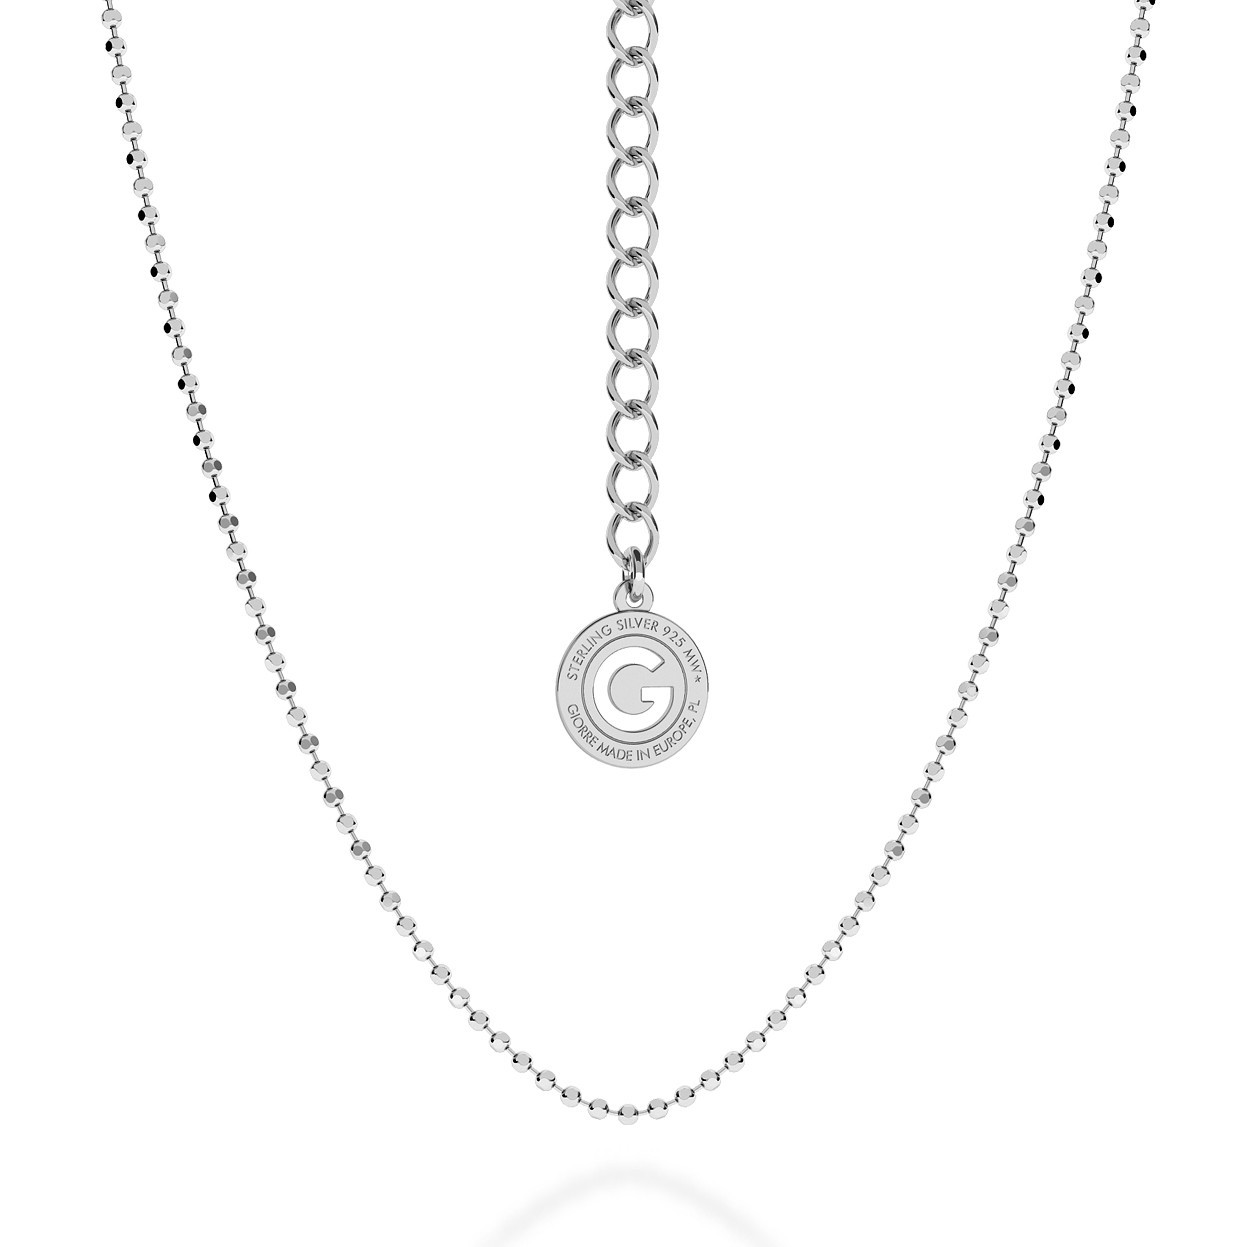 SILVER NECKLACE WITH BALLS 55 CM, RHODIUM PLATED